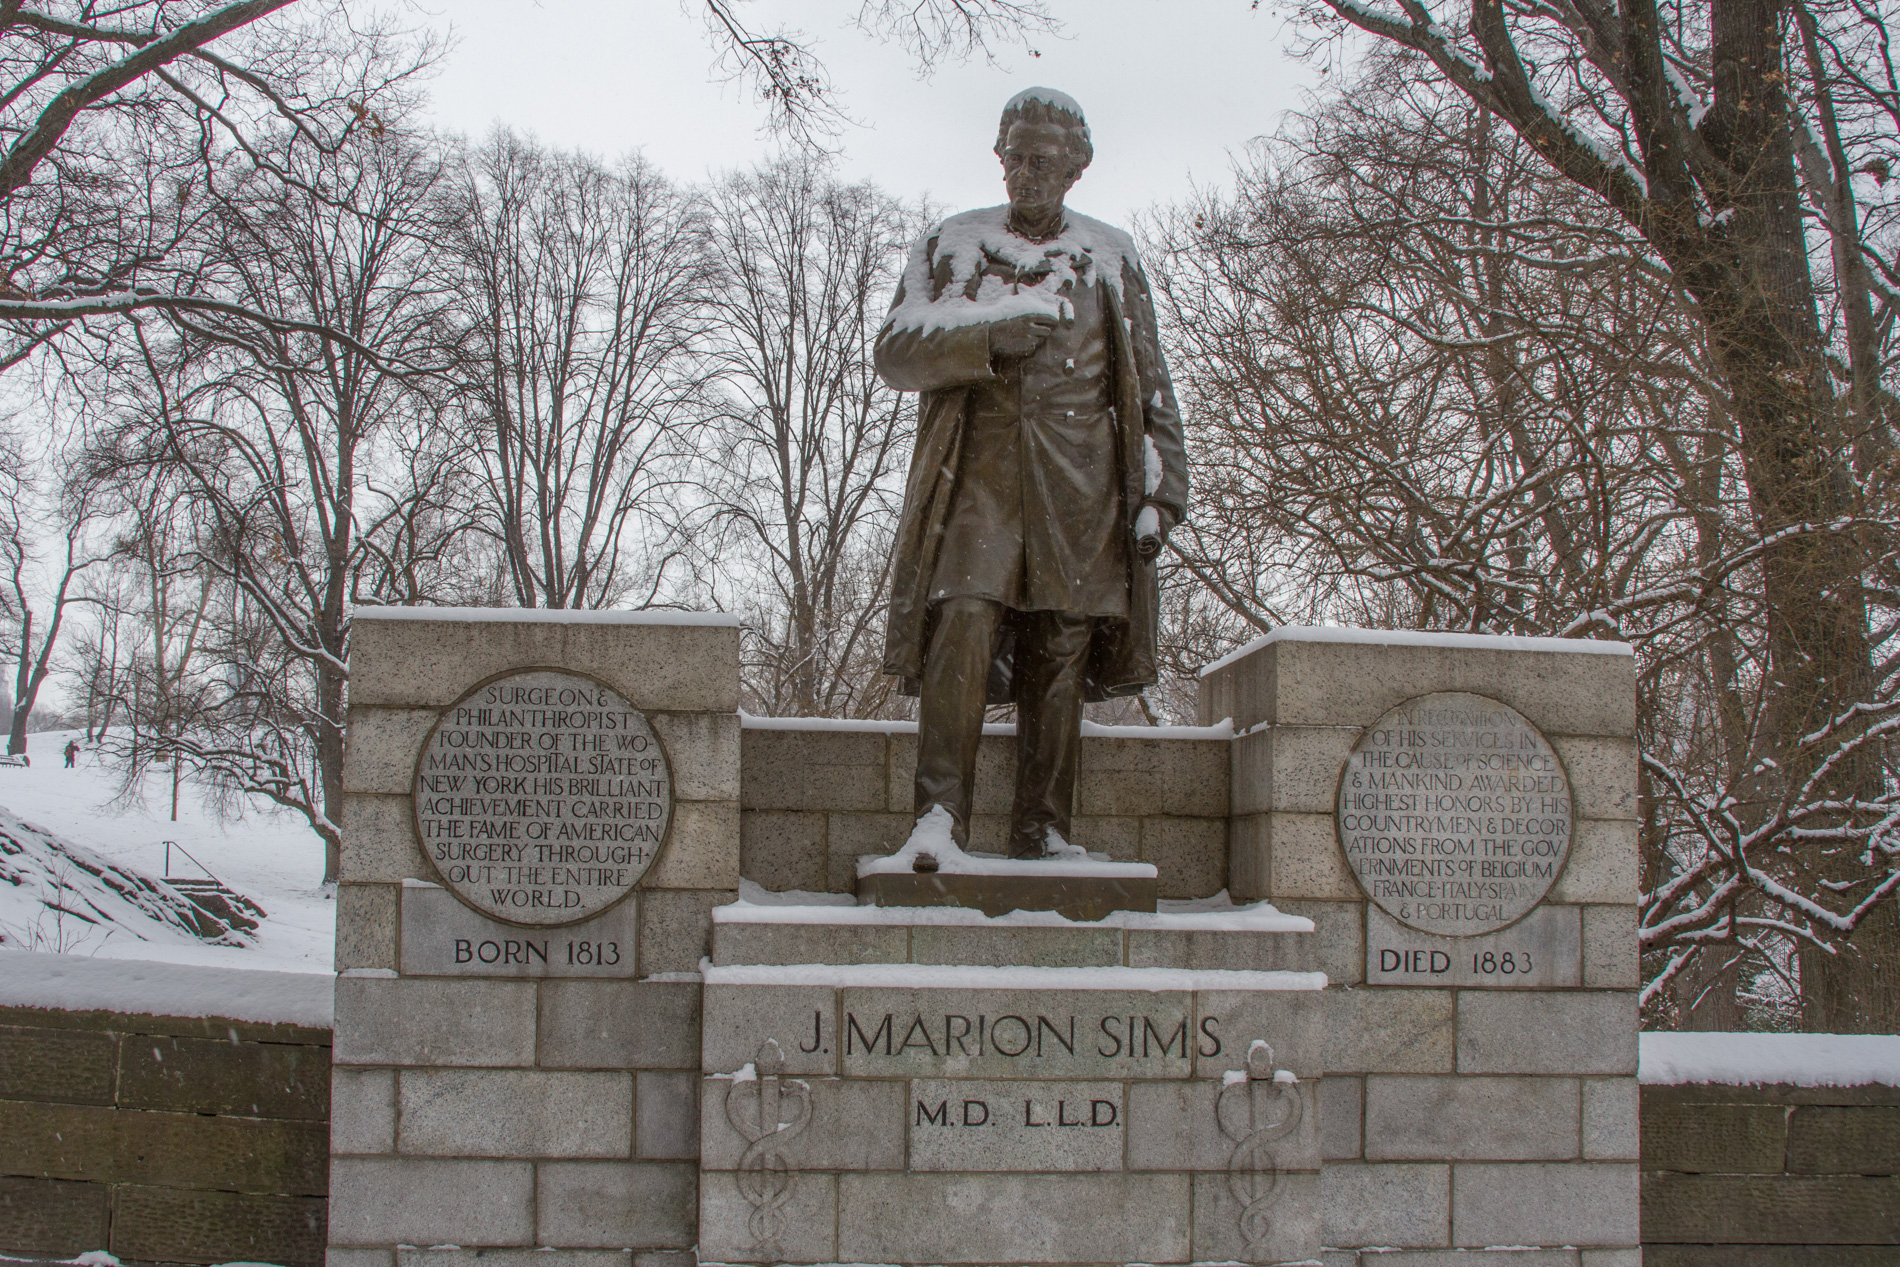 Dr. James Marion Sims [5703]